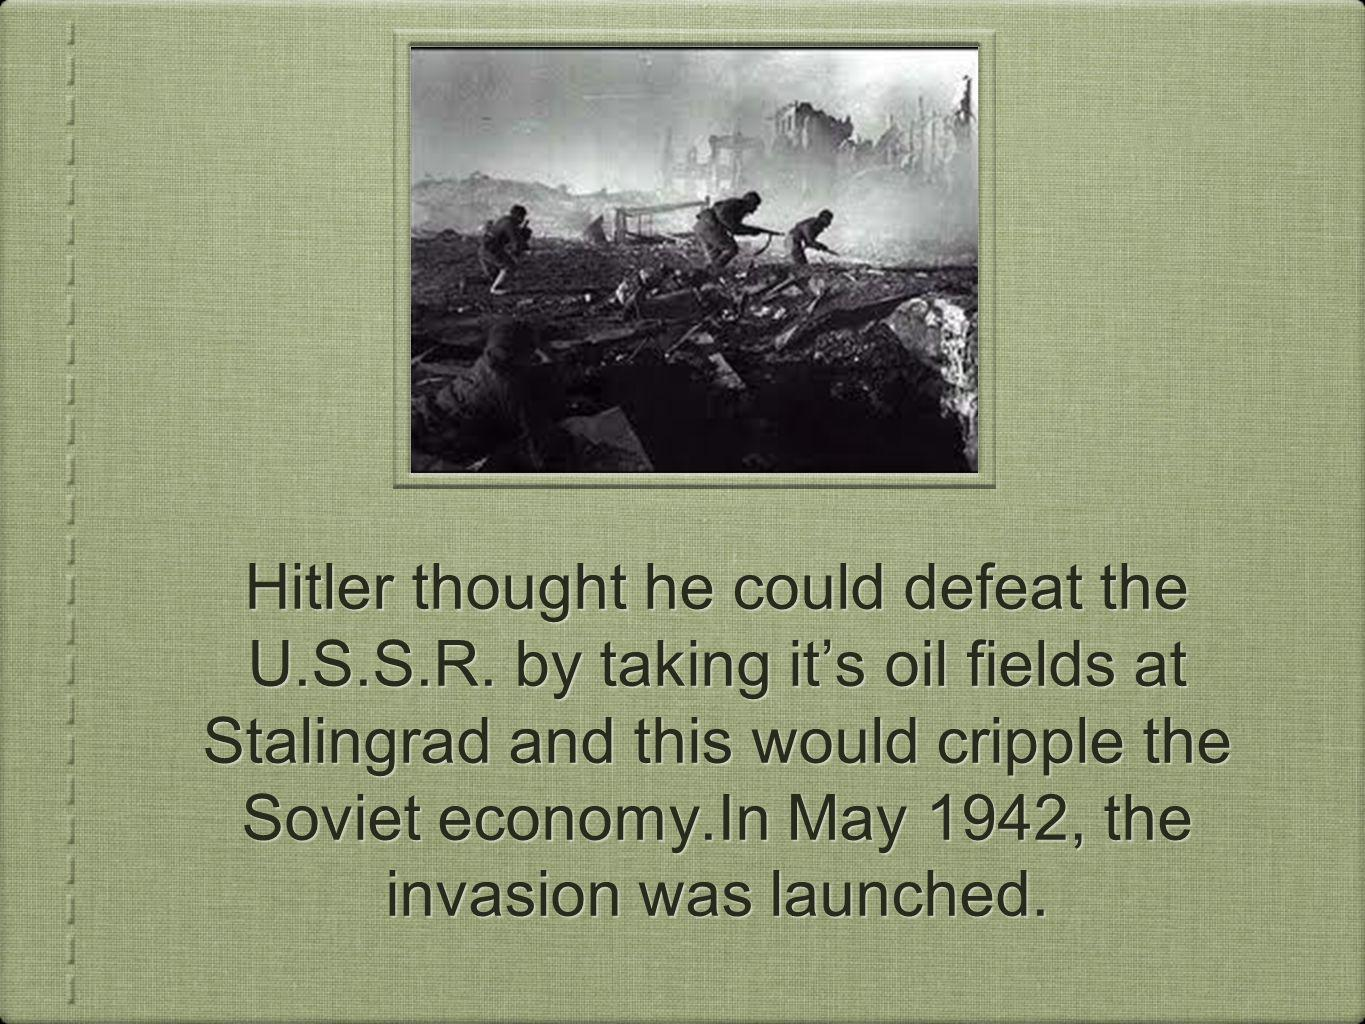 Hitler thought he could defeat the U.S.S.R. by taking its oil fields at Stalingrad and this would cripple the Soviet economy.In May 1942, the invasion